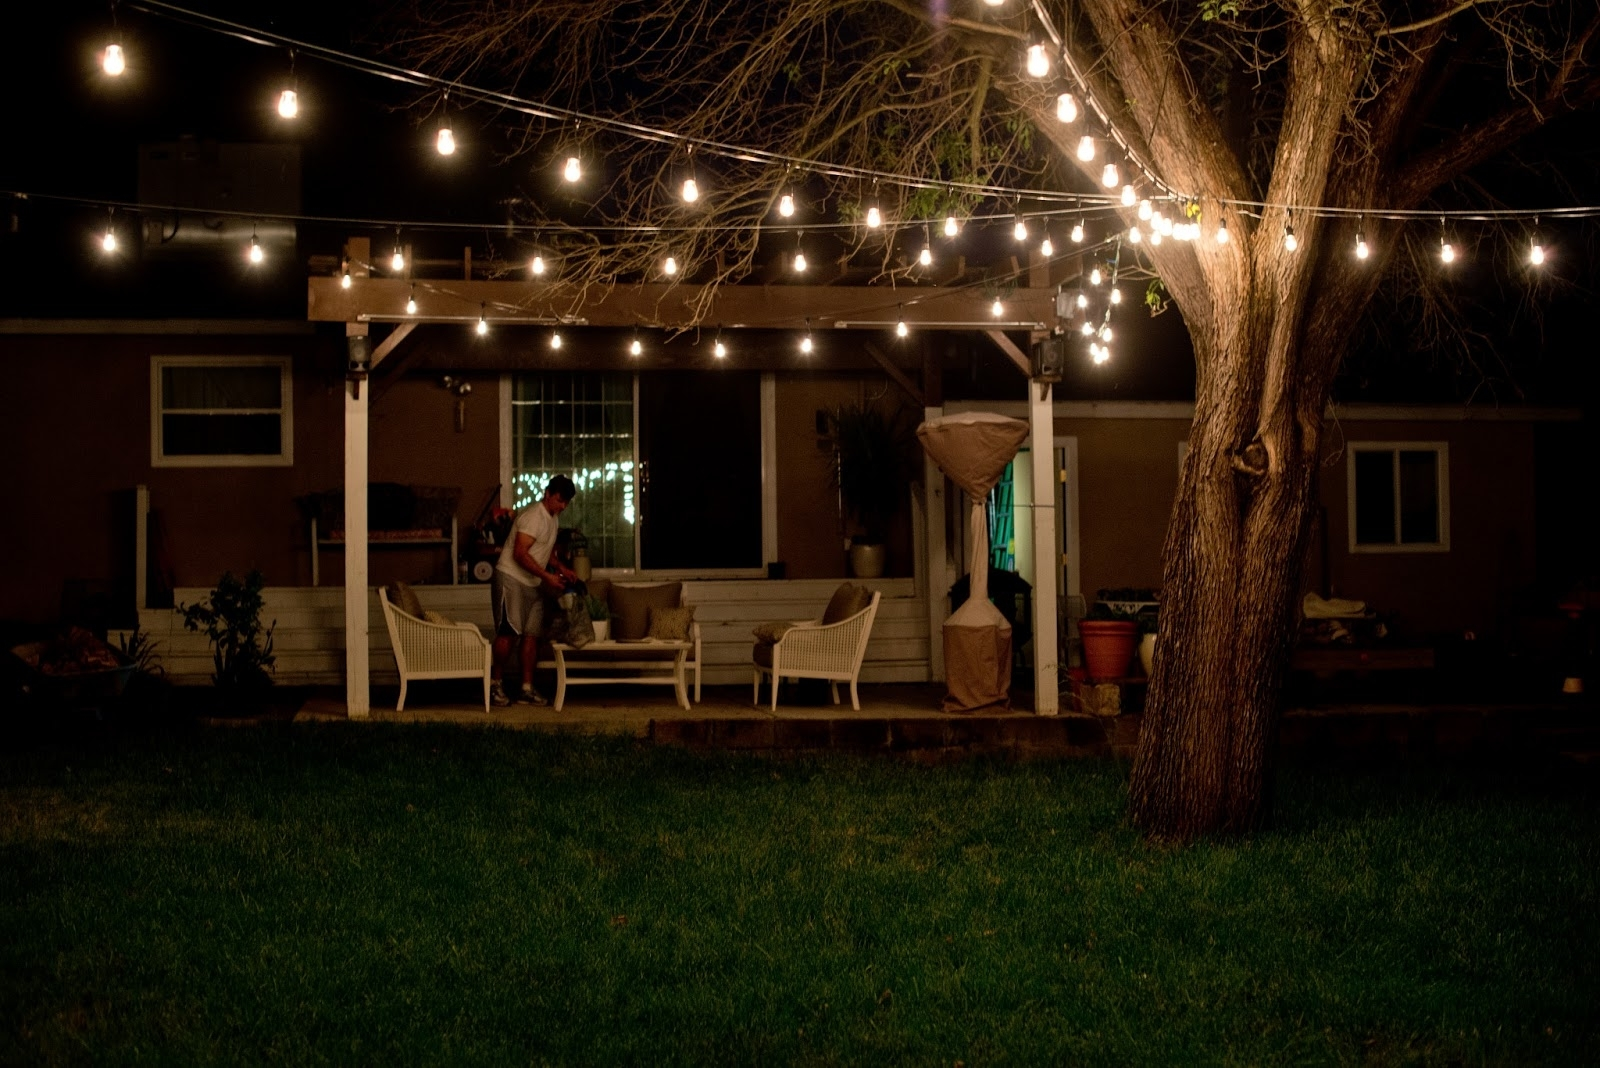 Incredible Hanging Patio Lights The Benefits Of Outdoor Patio Lights Regarding Outdoor Patio Hanging String Lights (View 9 of 15)